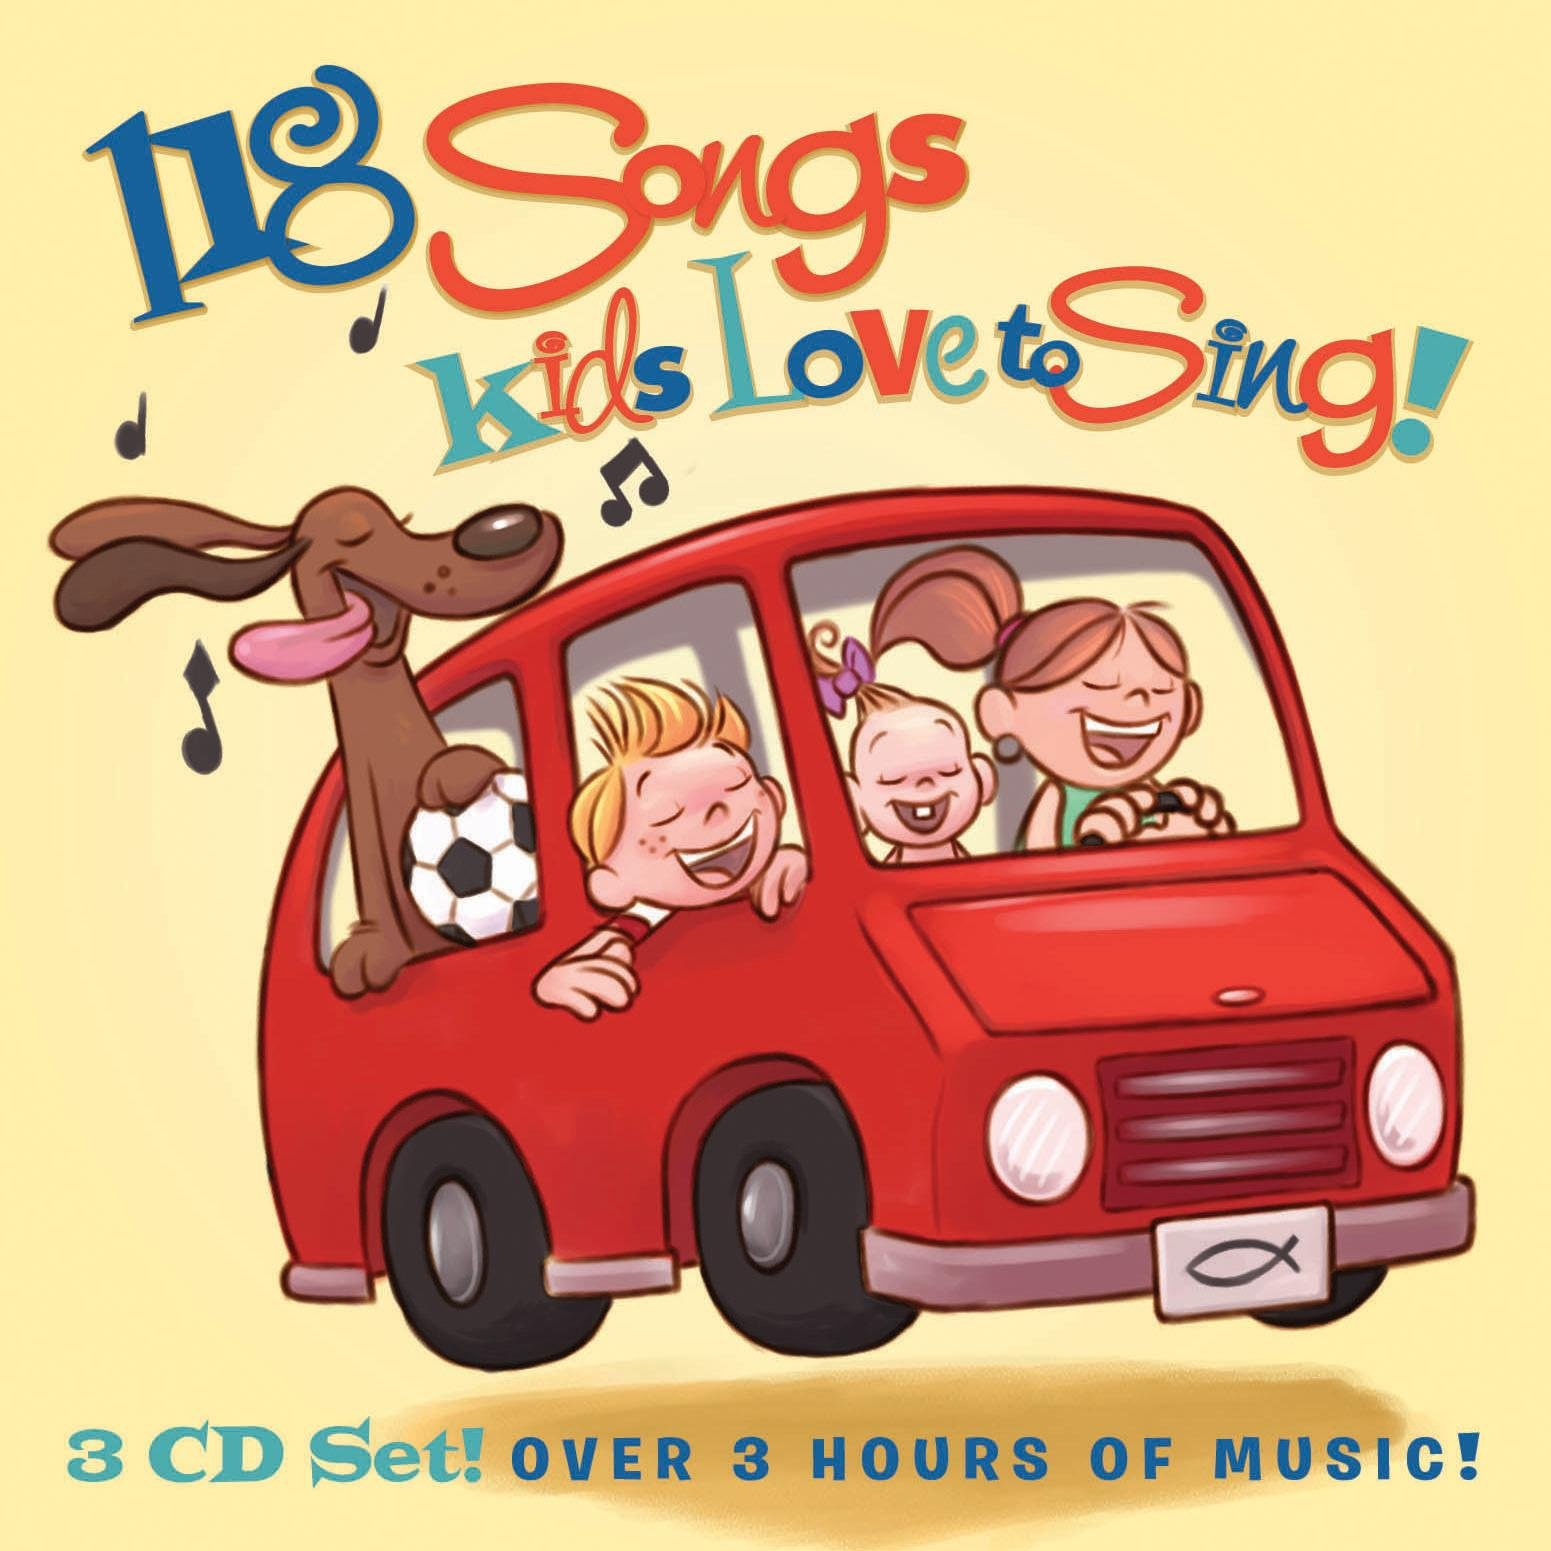 118 Songs Kids Love to Sing by Capitol Christian Distribution